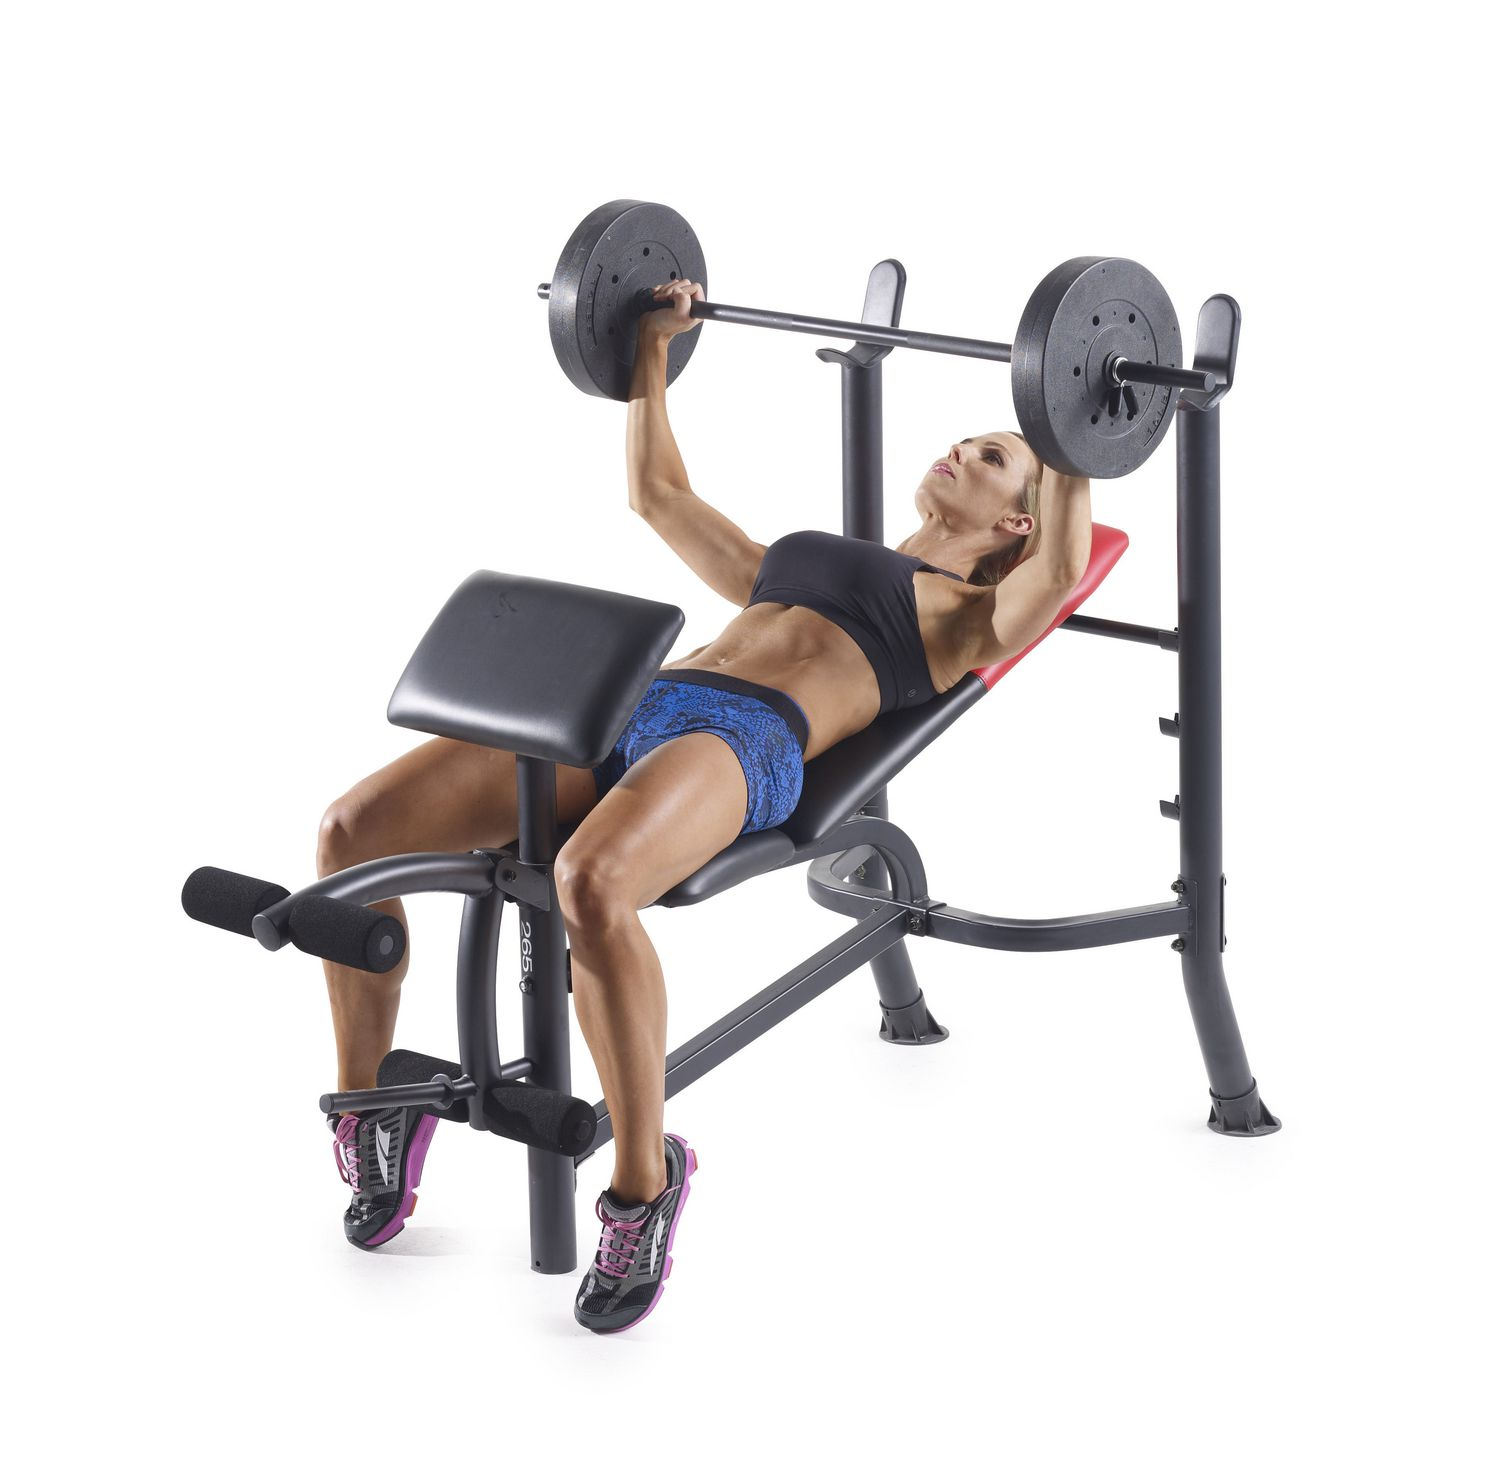 products uk weight gym bench duty kit and adjustable deluxe commercial heavy equipment weights kustom